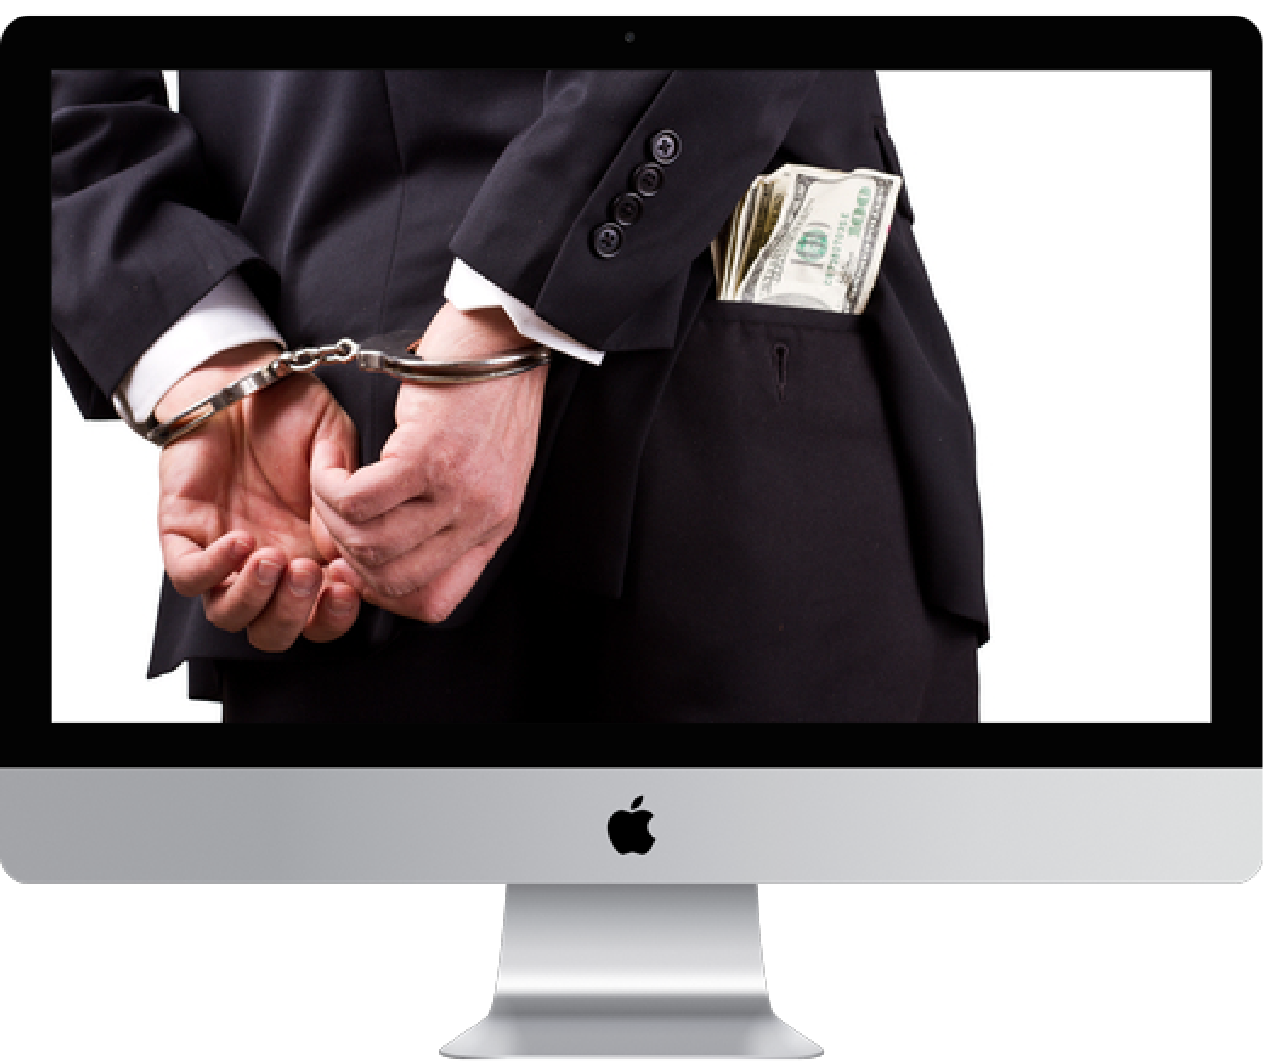 imac with person in hand cuffs and money in pocket